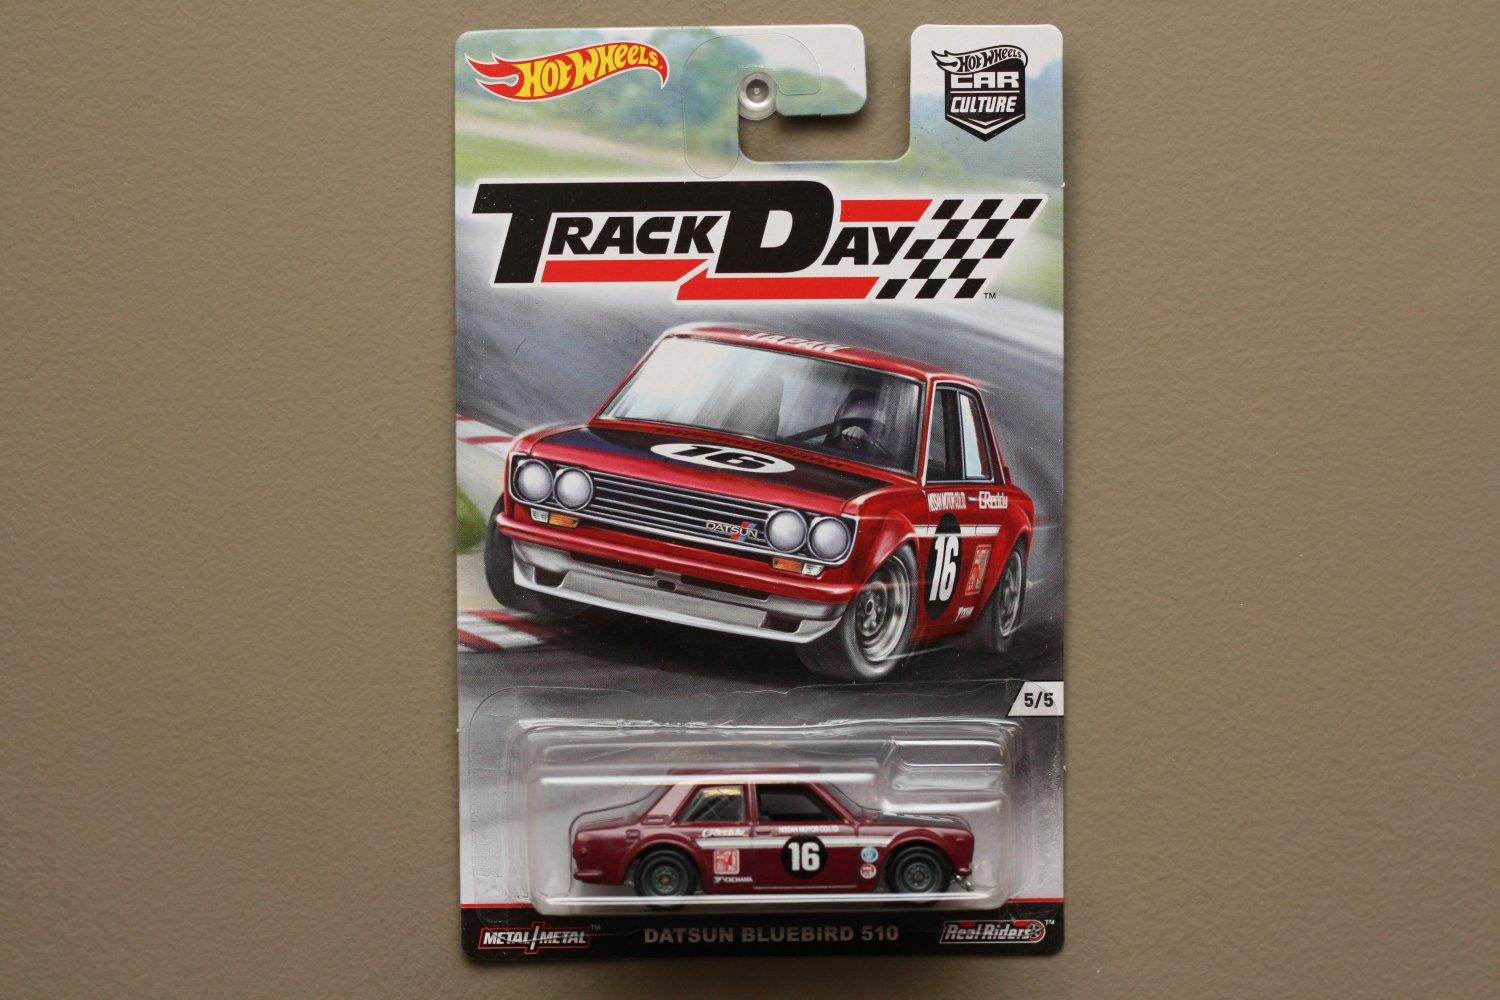 Hot Wheels 2016 Car Culture Track Day Datsun Bluebird 510